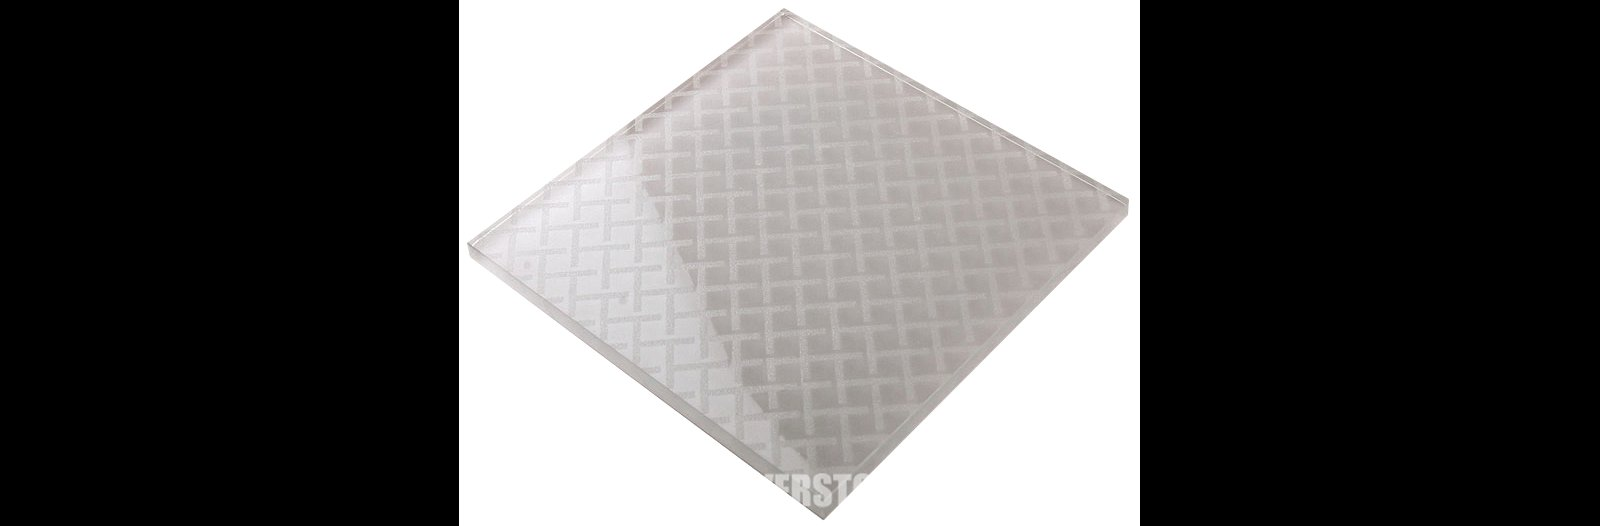 Everstone Glass Tile